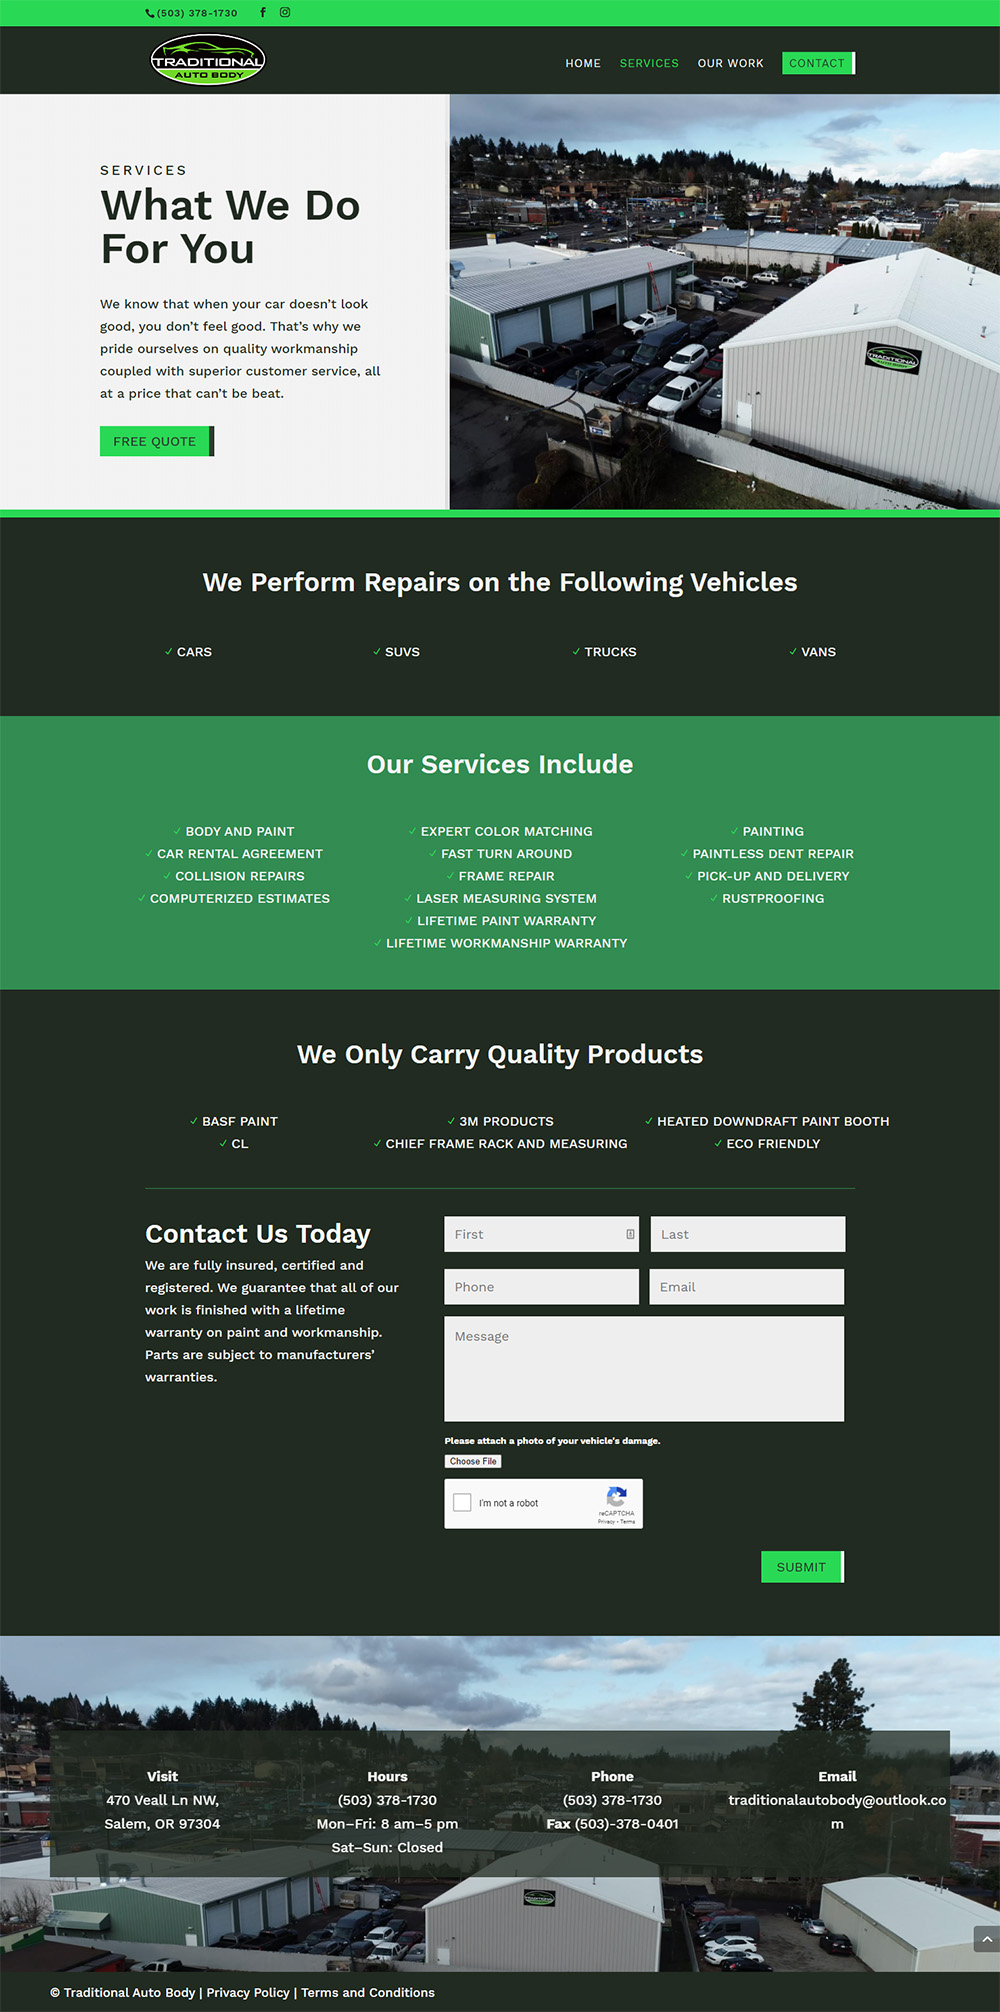 Traditional Auto Body Services page after redesign